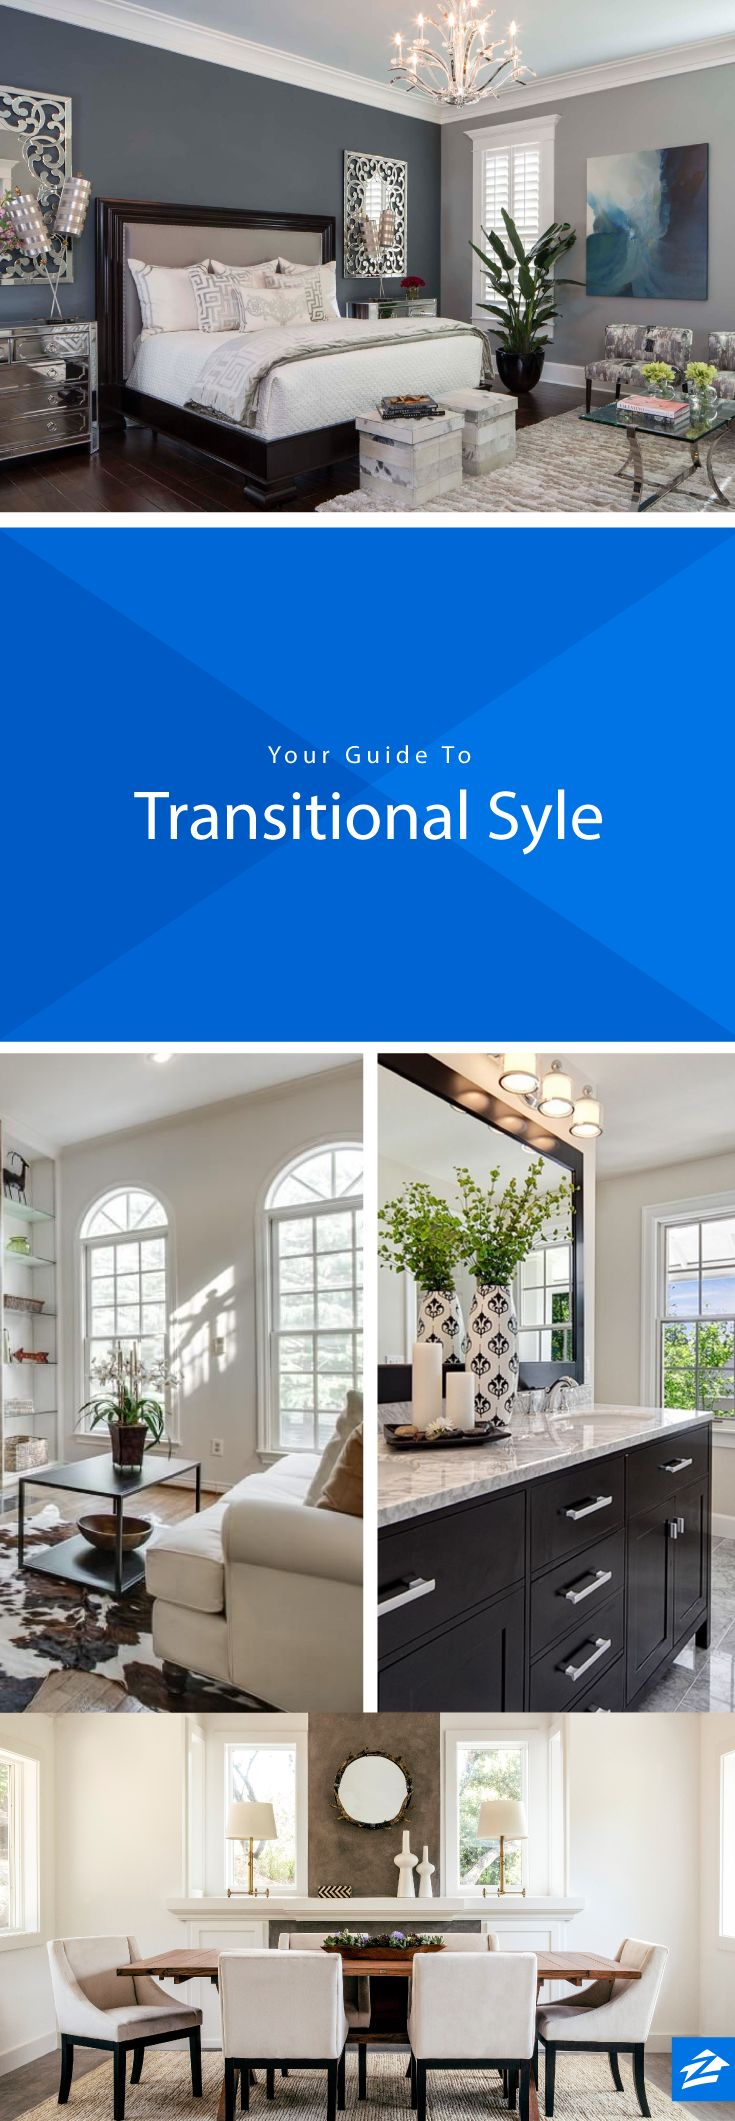 Transitional Style - Tips On Transitional Room Design